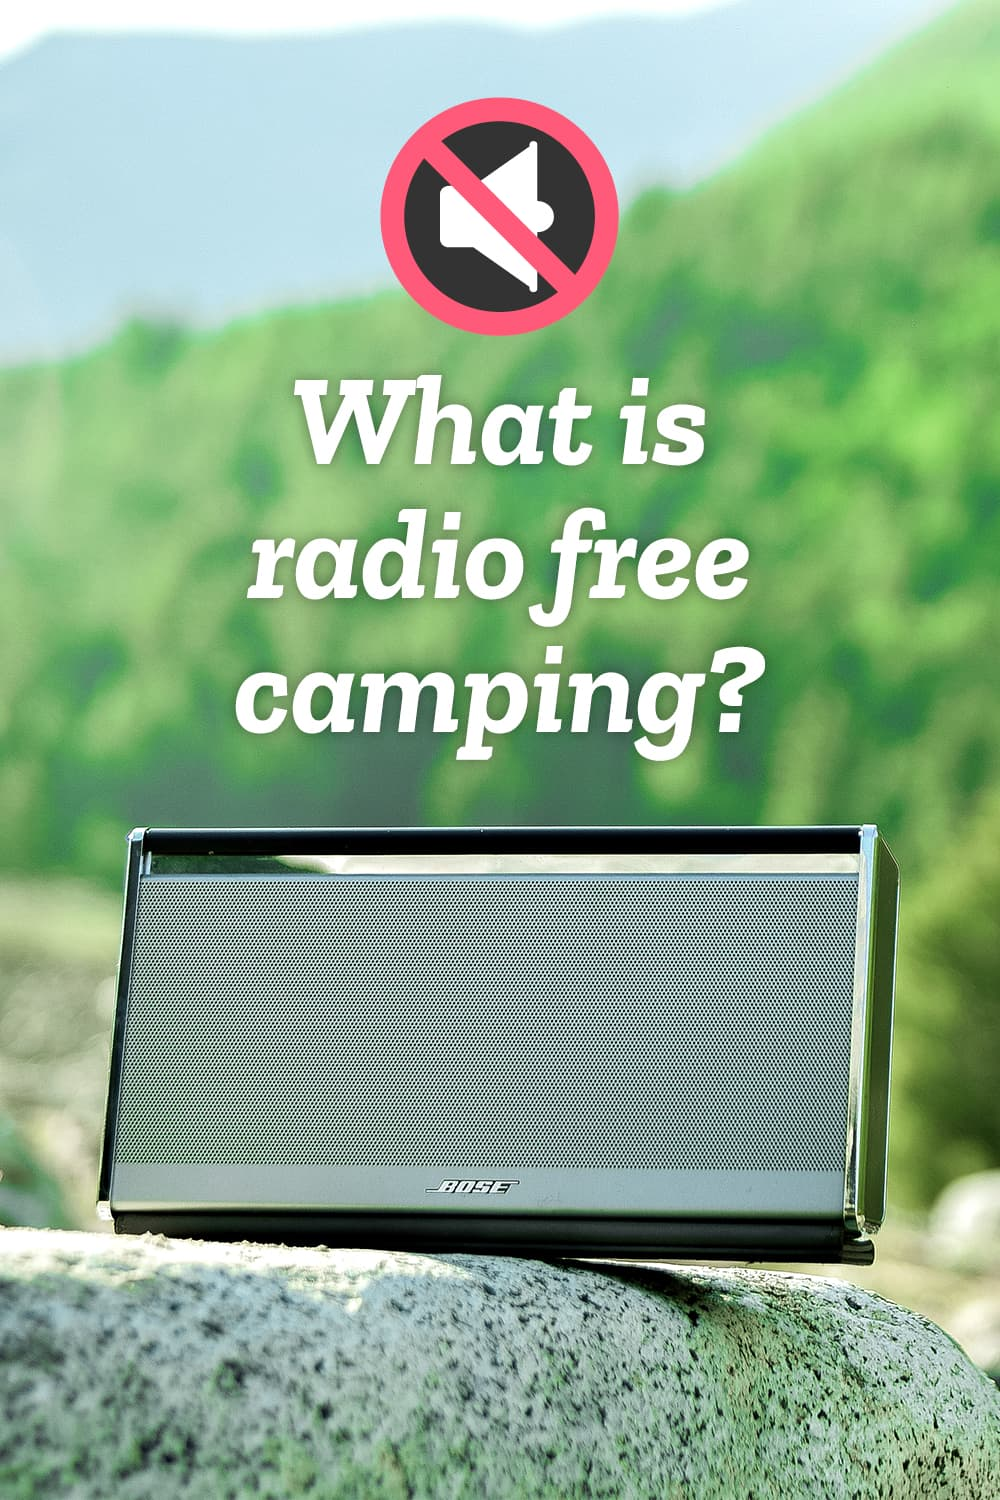 Bose speaker outdoors at a campsite